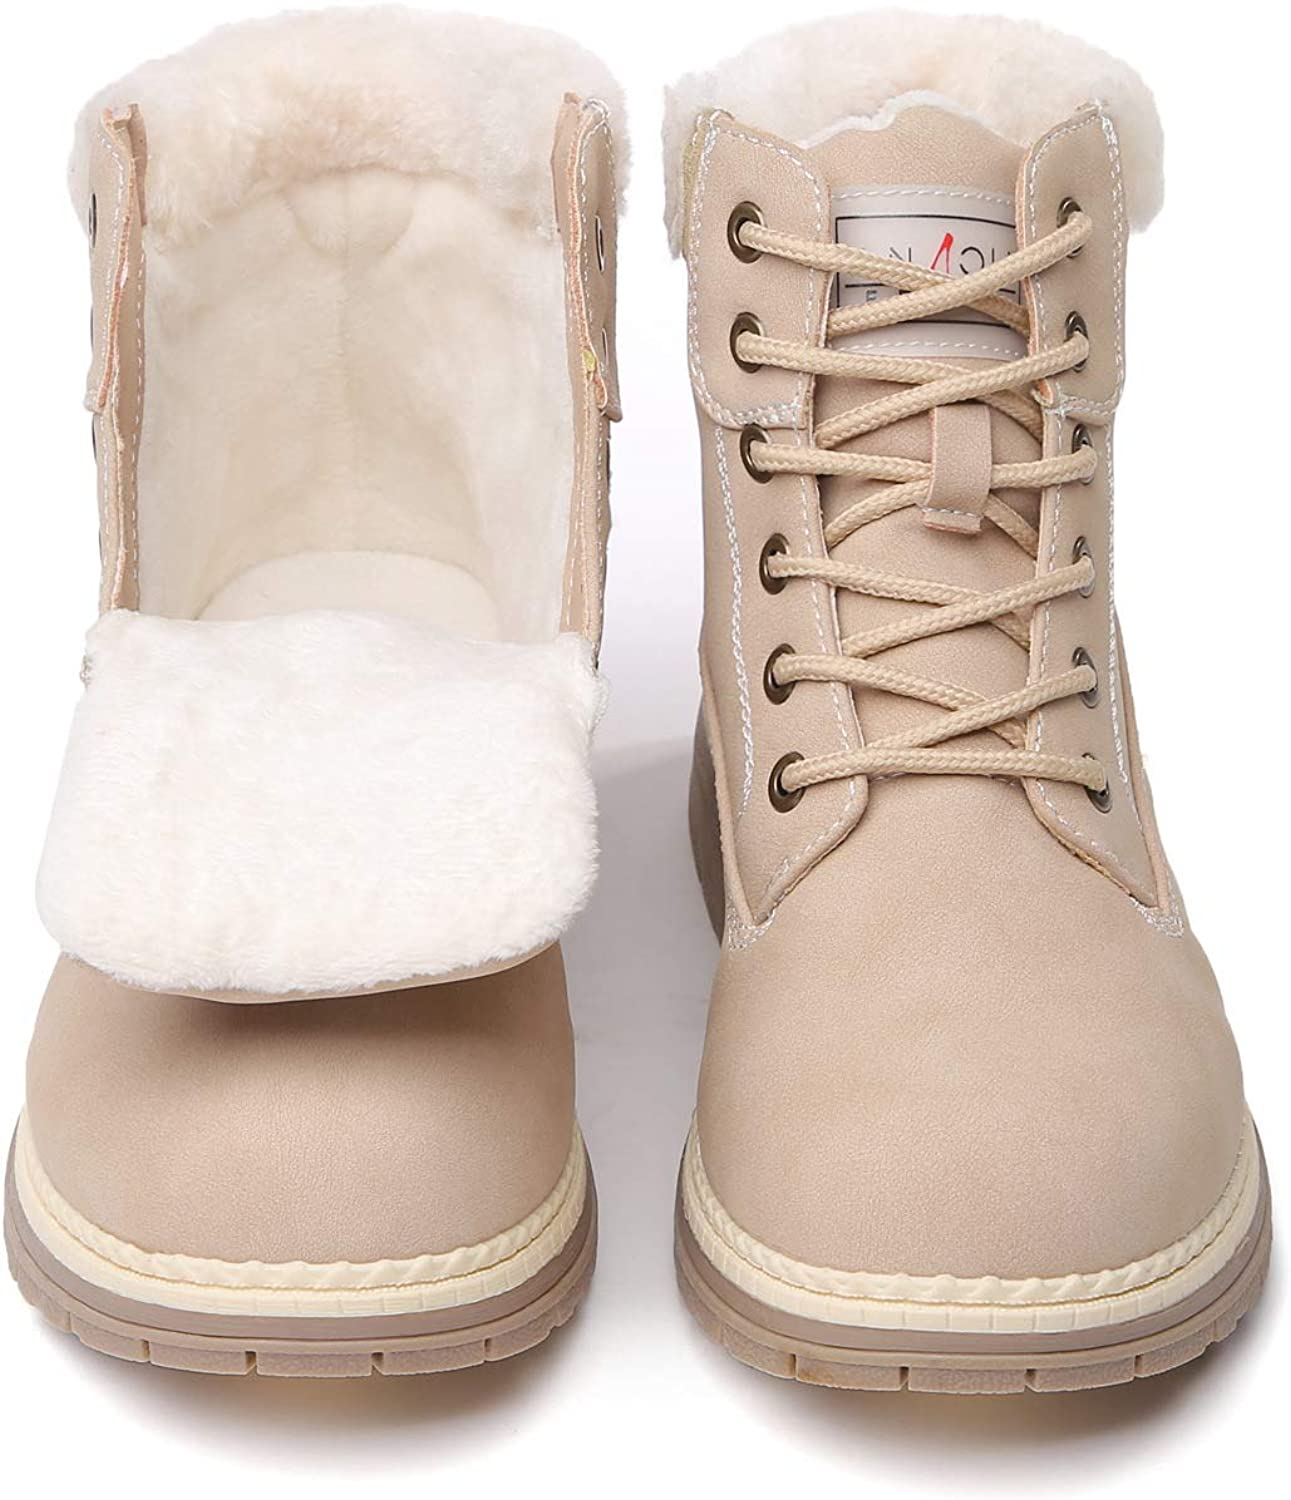   ANJOUFEMME Combat Work Hiking Boots for Women   Hiking Boots